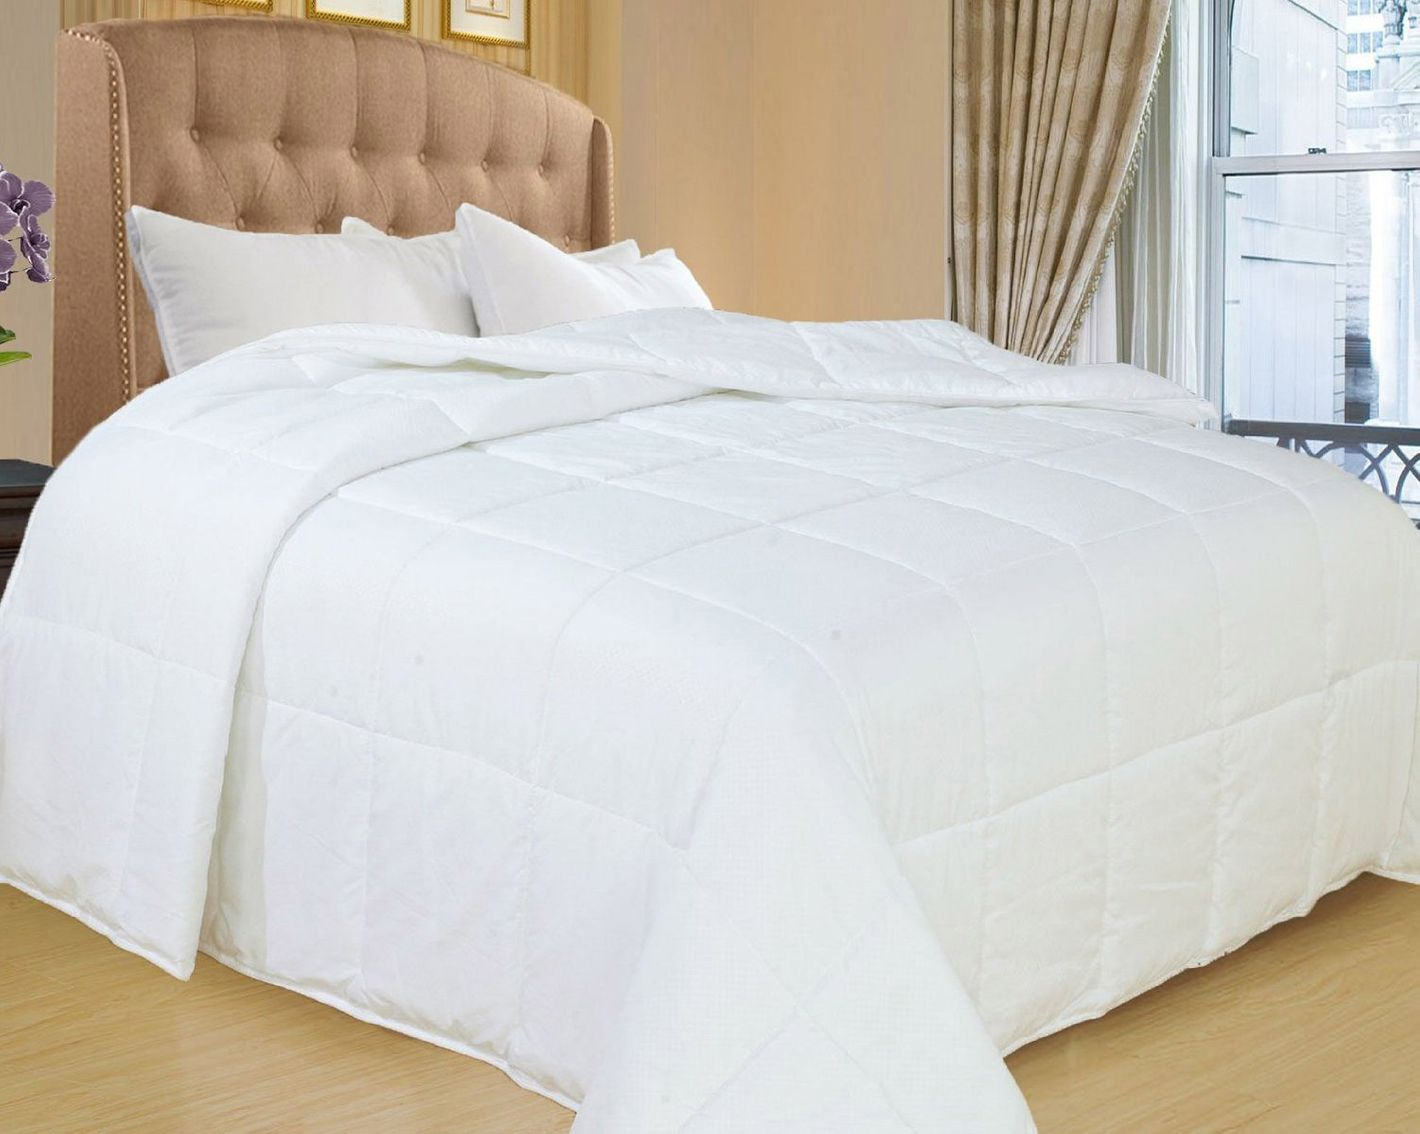 fluffy puffy your new of ideas collections unique comforter breathtaking bedding white big for decoration picture